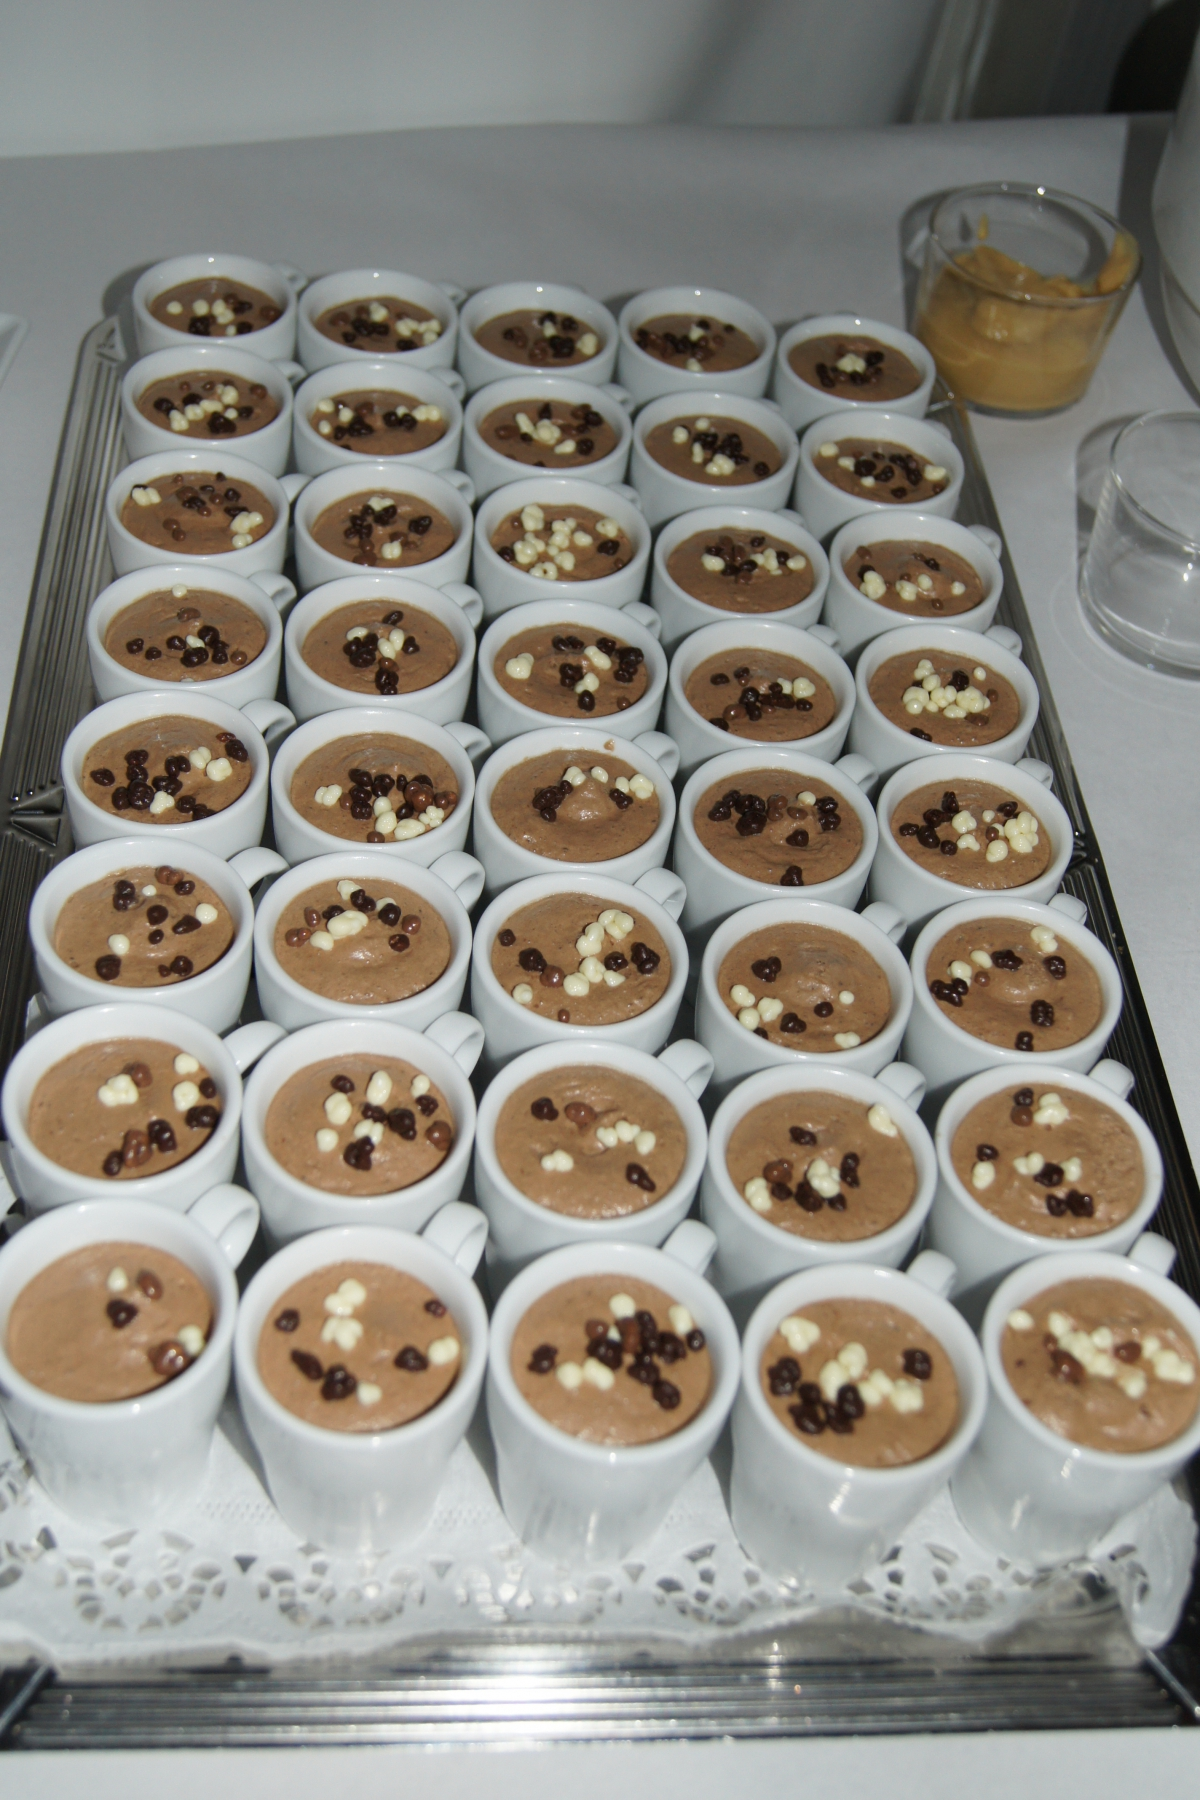 Mousse au Choccolat